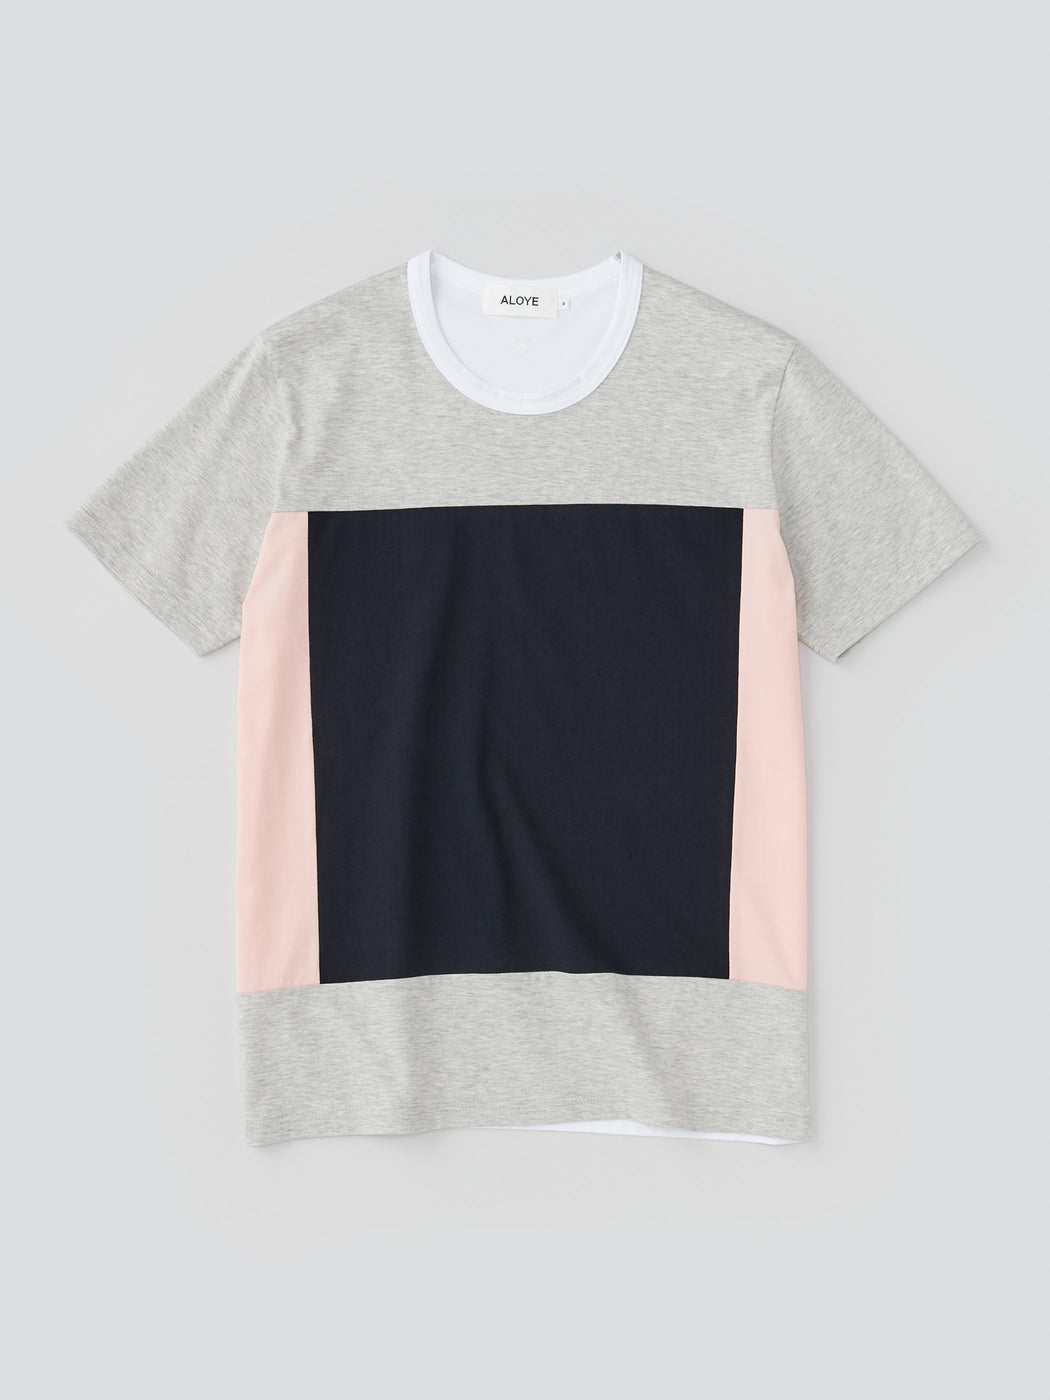 ALOYE Color Blocks Men's Short Sleeve T-shirt Heather Gray-Navy-Pink